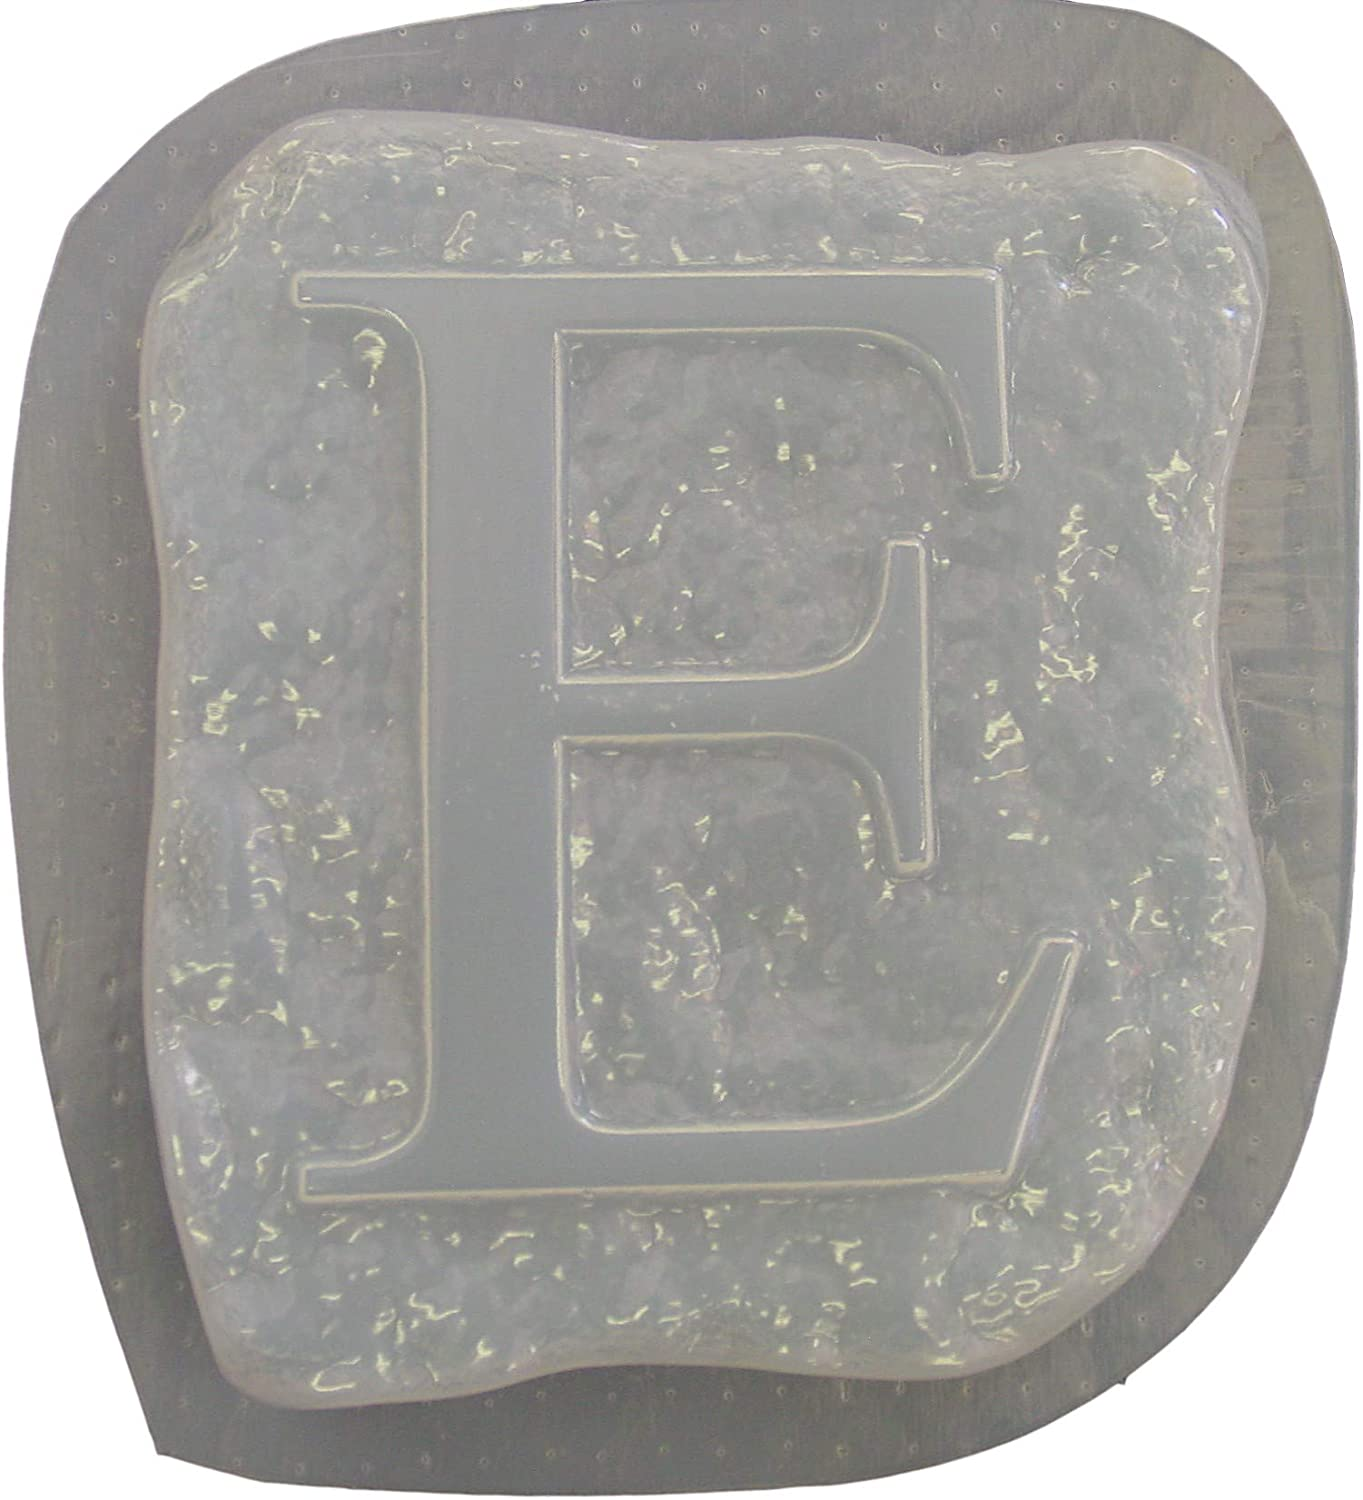 Sailboat stepping stone mold concrete plaster casting